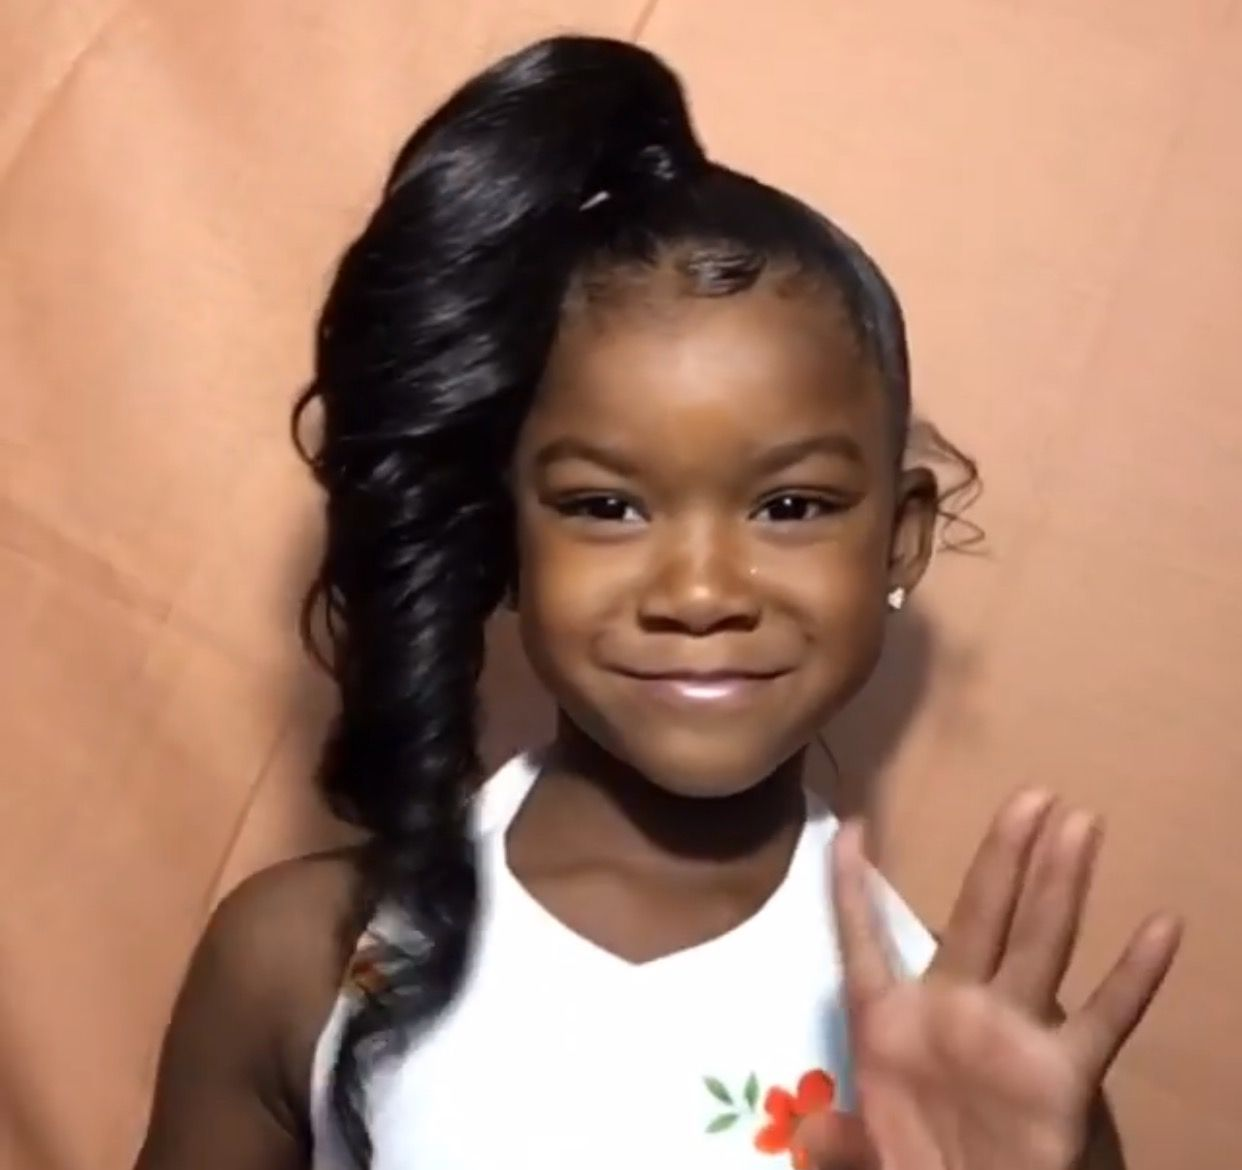 Graduation Hair Pre K She Is So Gorgeous Follow Us For More Hair Nails And Style Kids Hairstyles Little Girl Ponytails Lil Girl Hairstyles